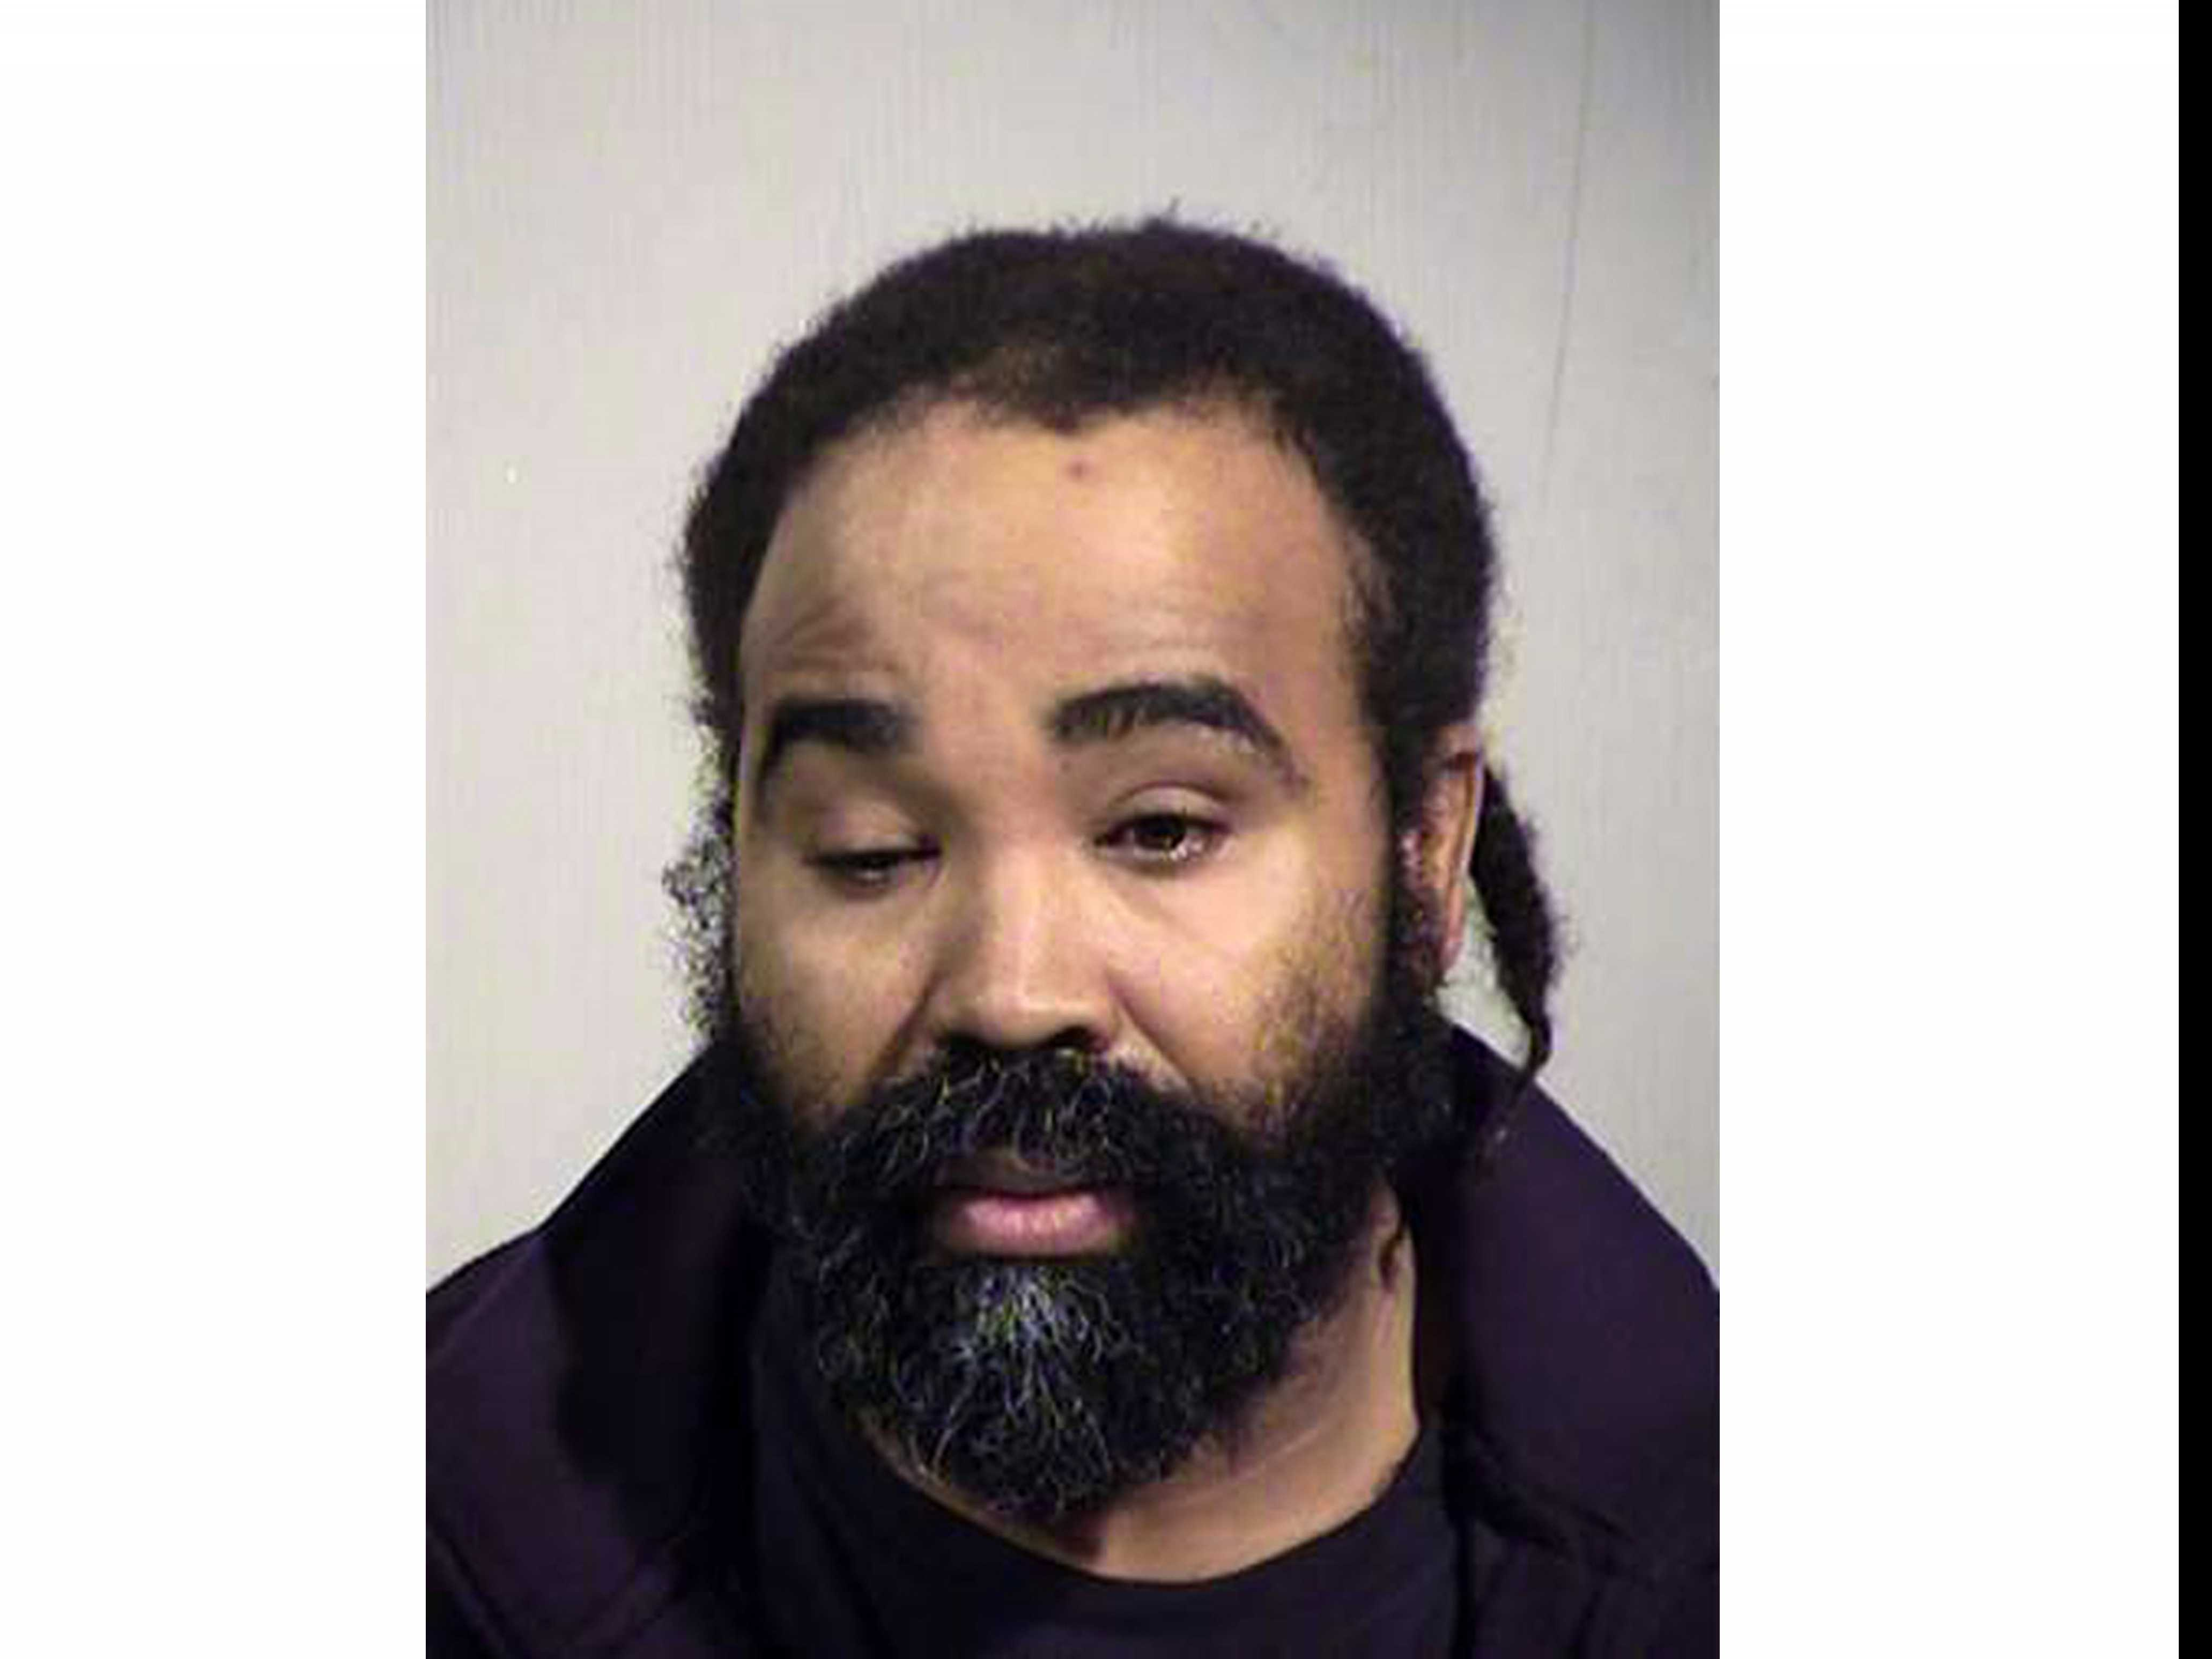 Ex-Nurse Accused of Raping Patient Appeals HIV Testing Order